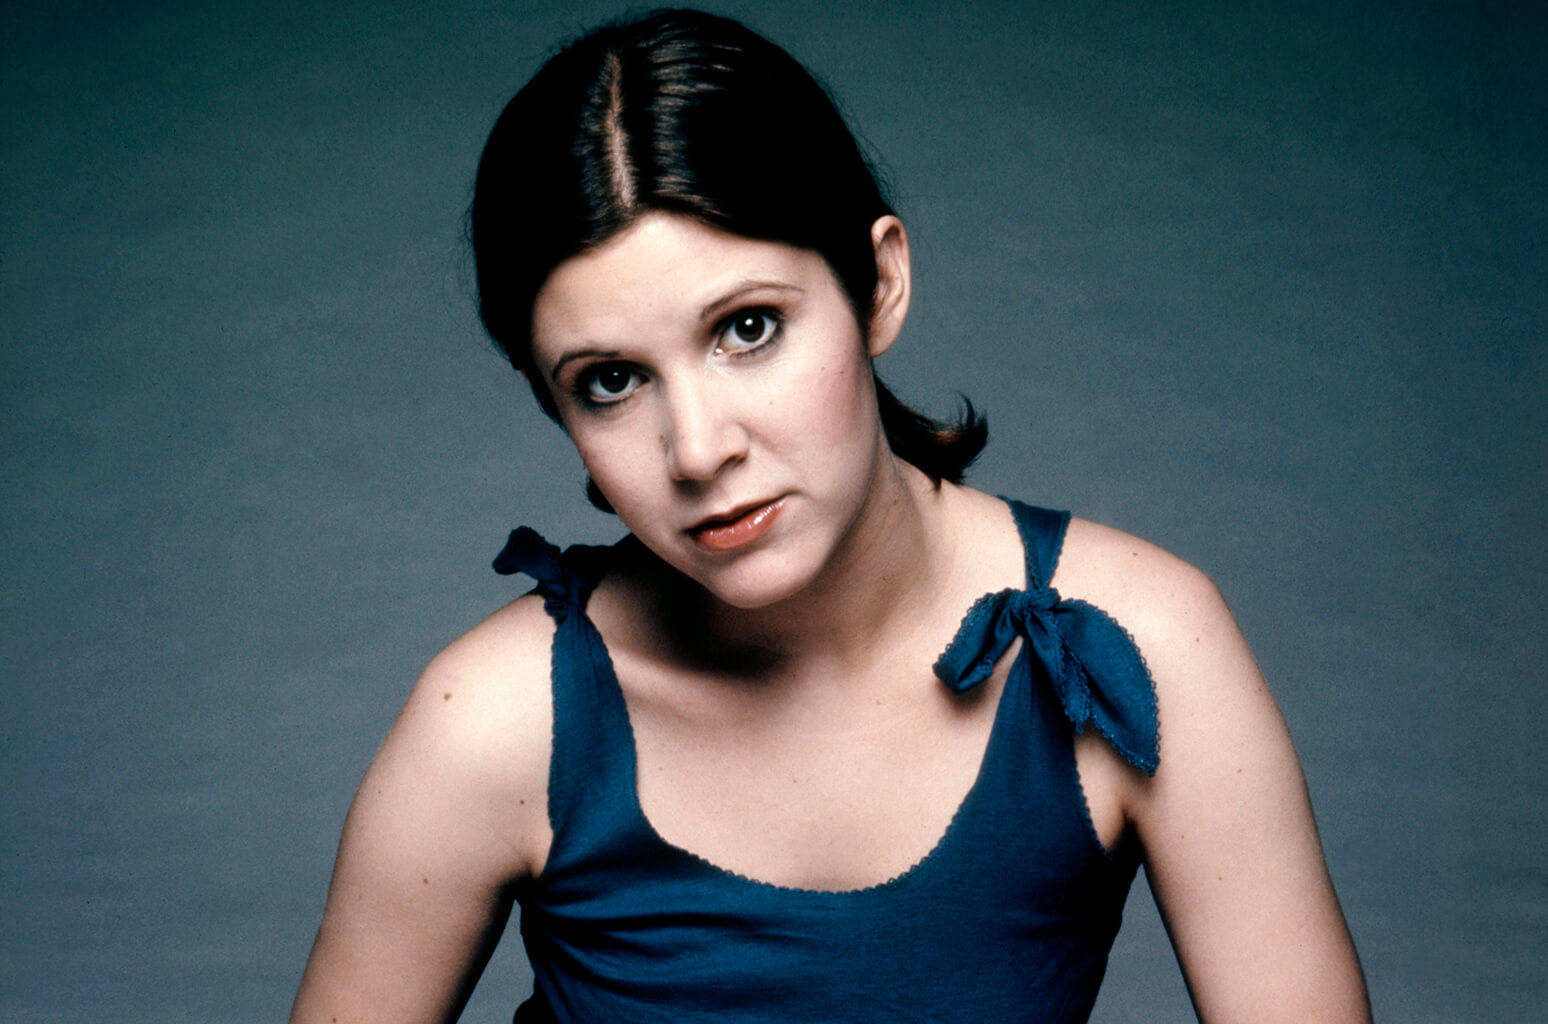 carrie fisher looking hot